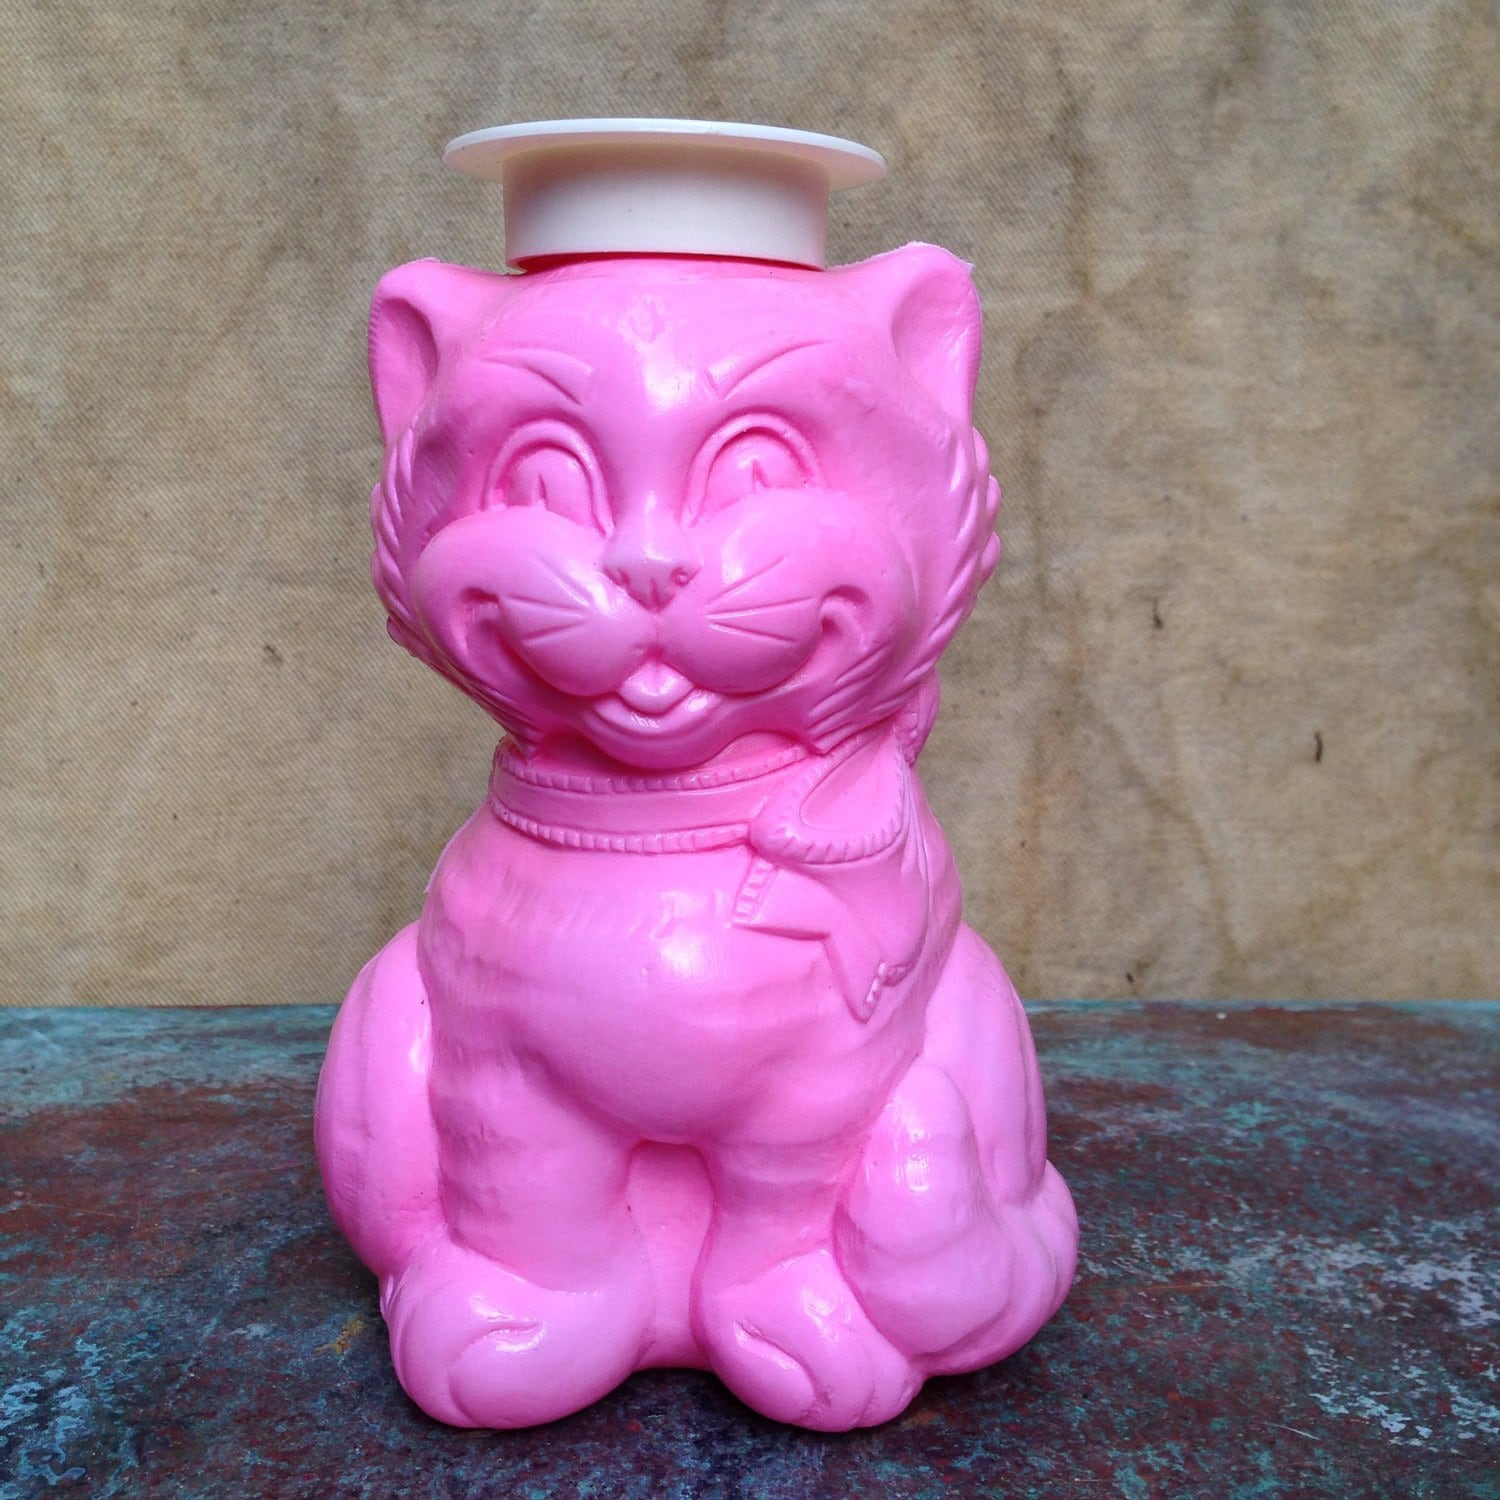 Pink Plastic Piggy Banks Kitty Cat Bank Pink Plastic Coin Bank Money Saving Kids Room